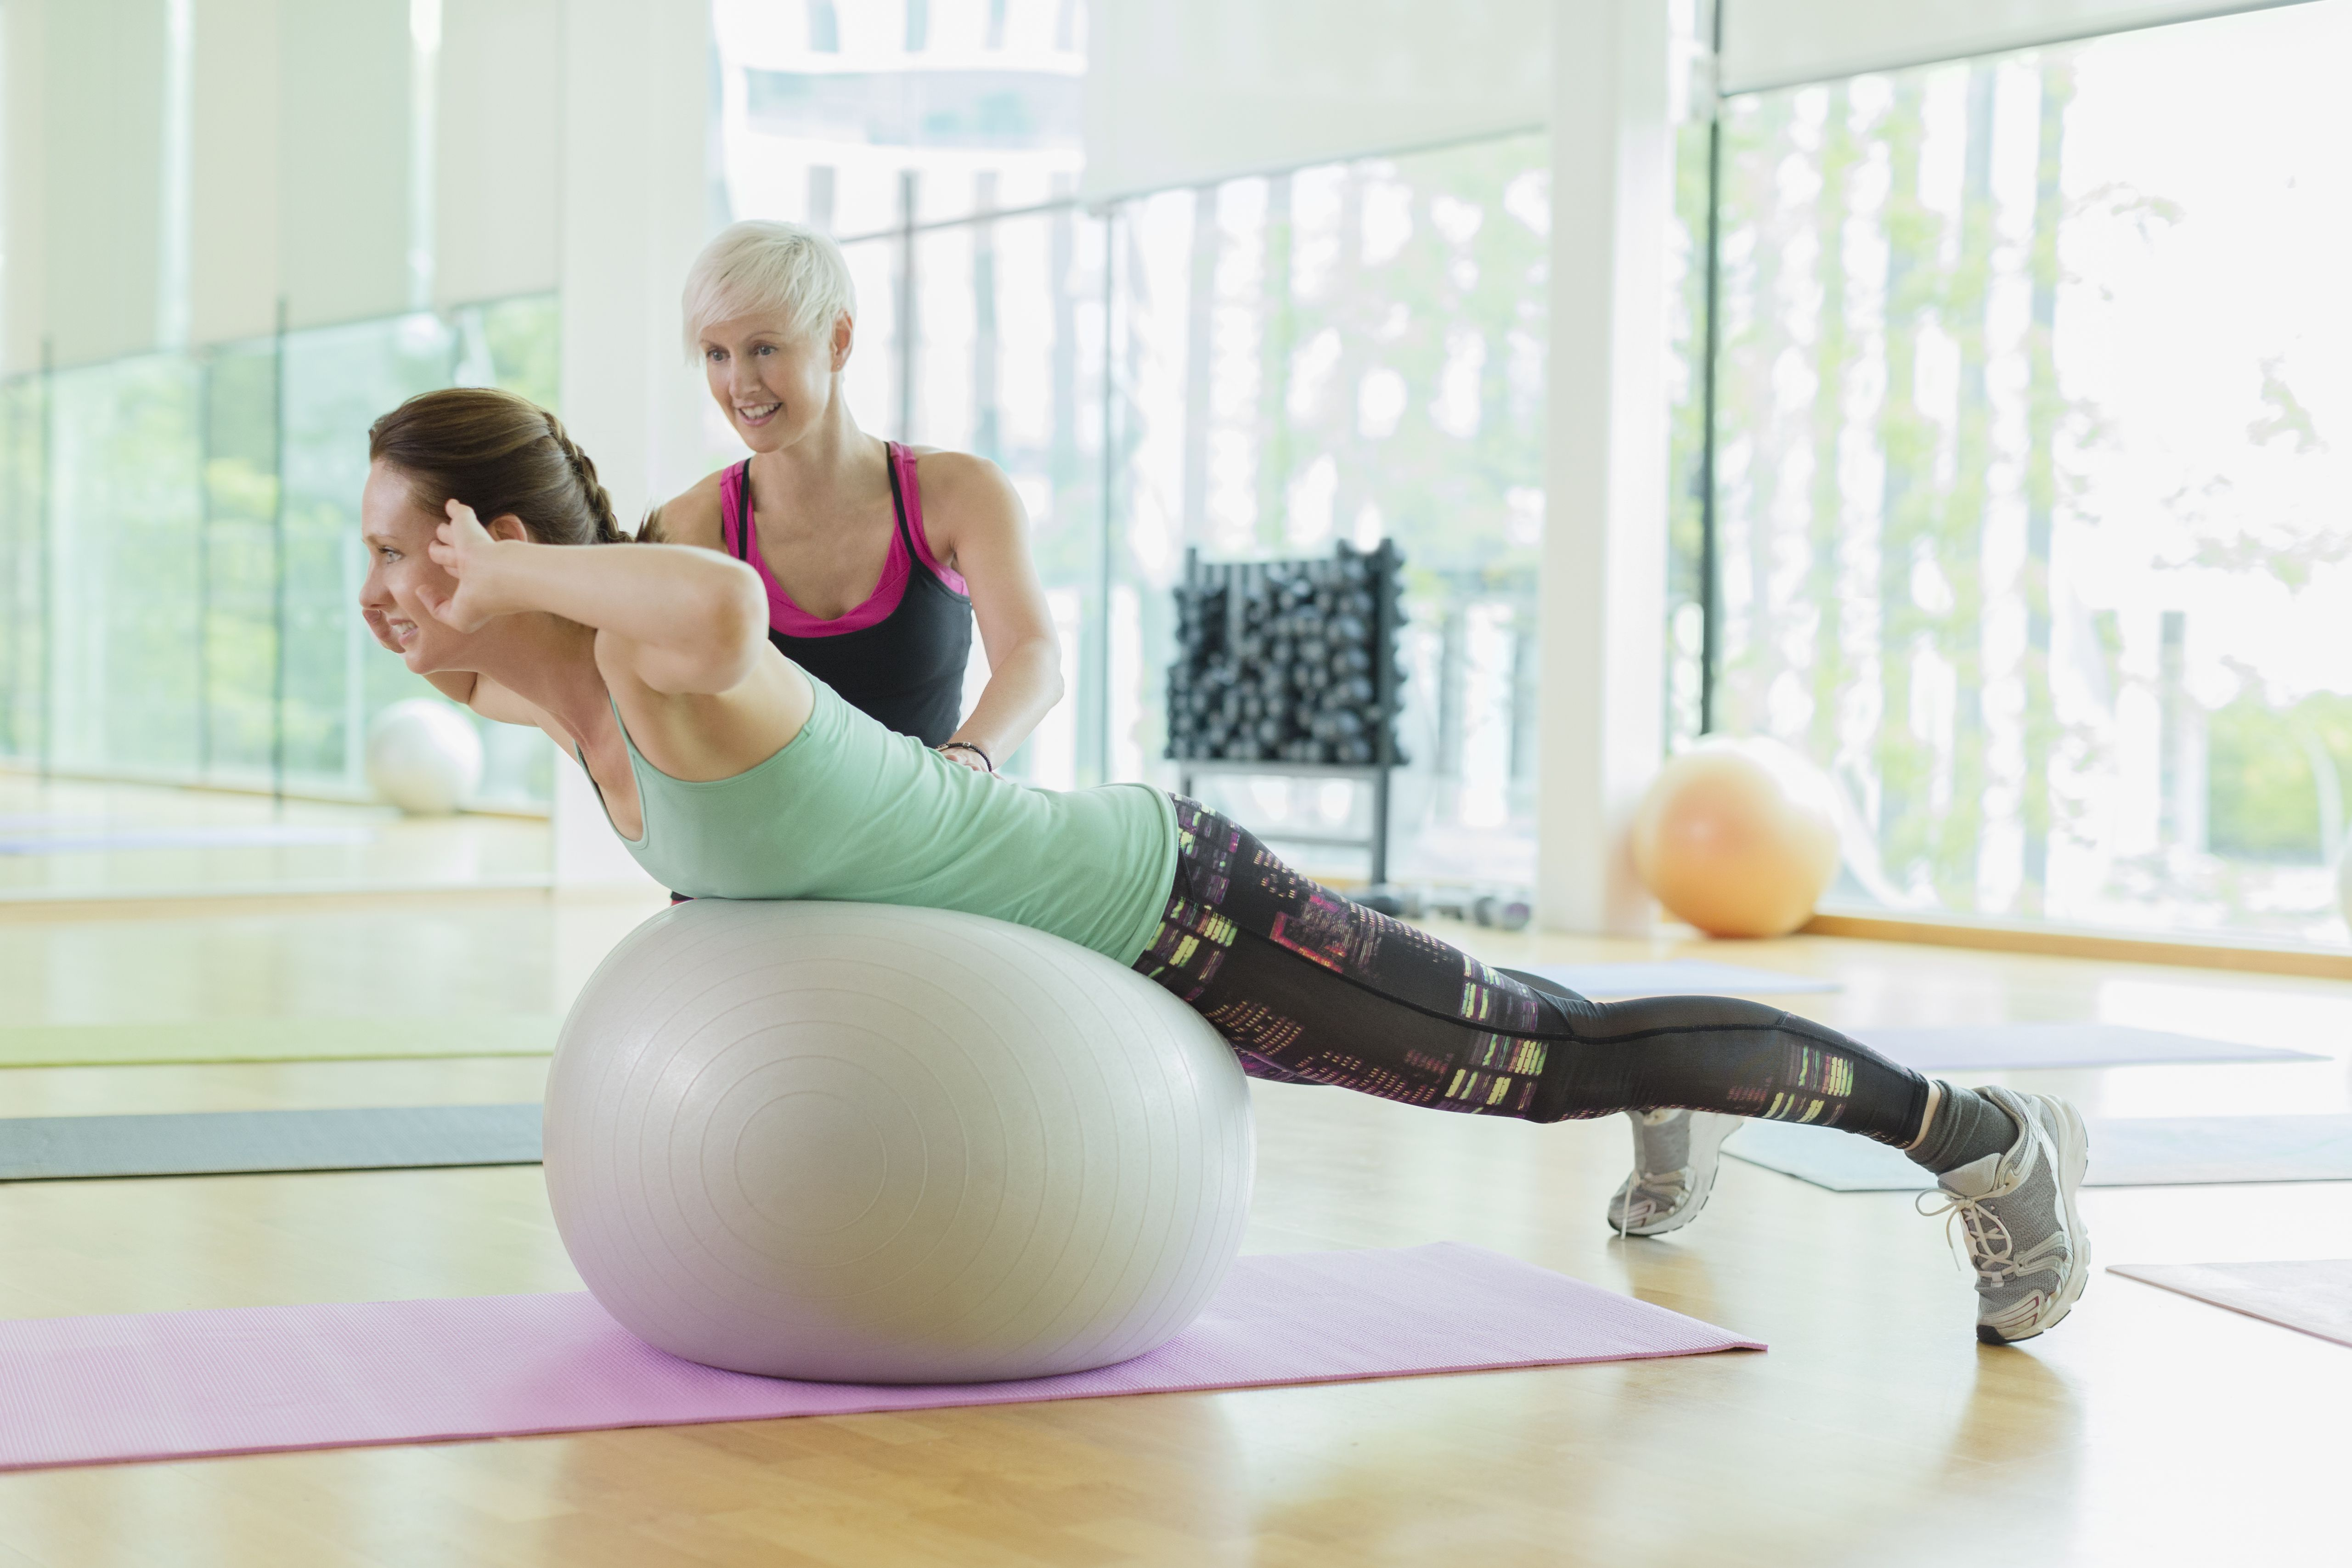 Personal trainer guiding woman doing back extensions on fitness ball